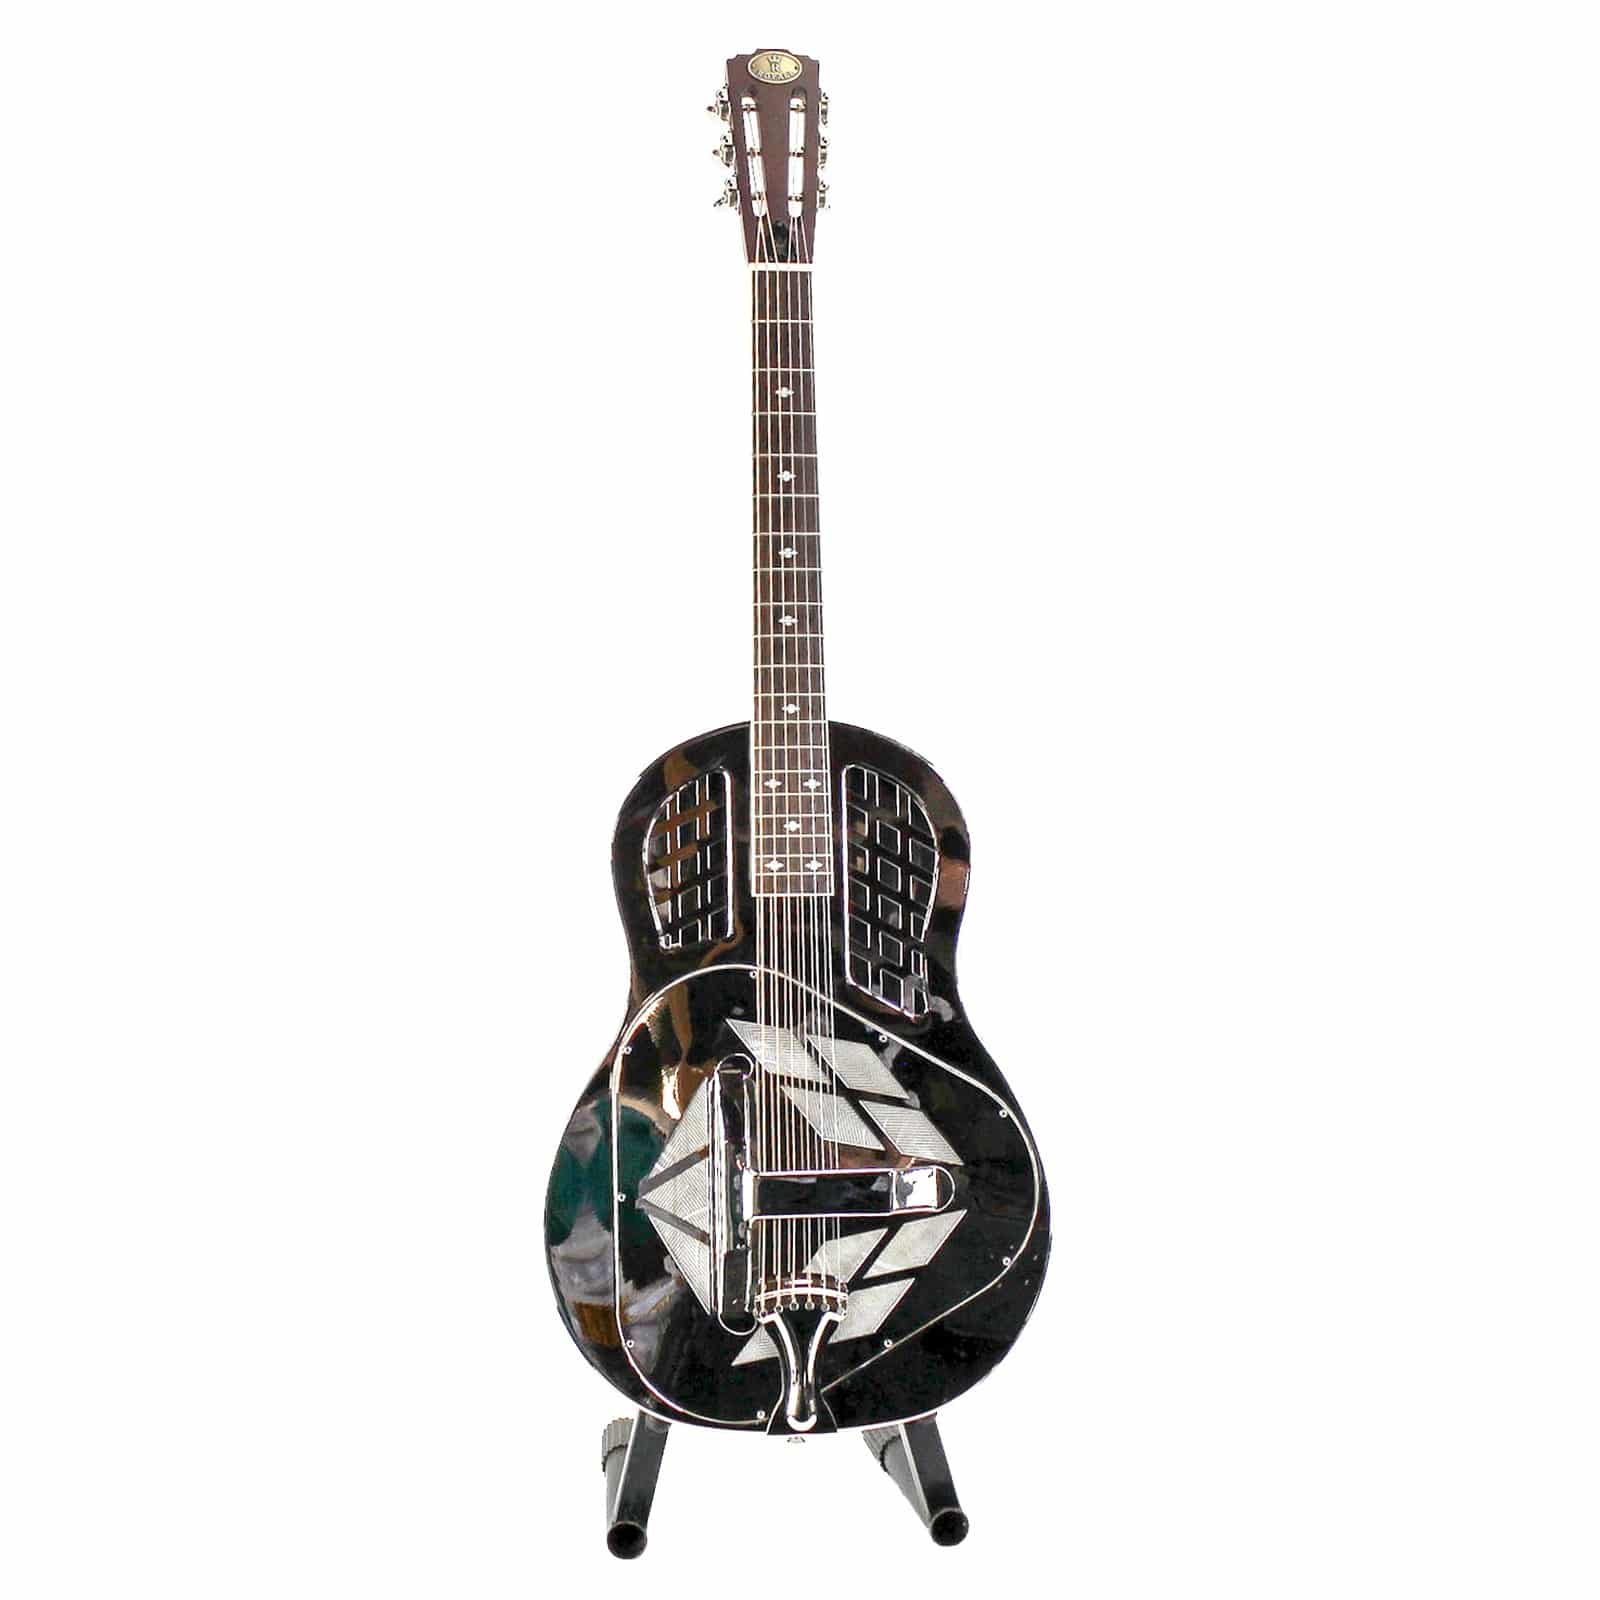 Imperial Guitars Theyre Made From Trees Art 320 Humbucker Wiring Diagram Royall Trifecta Nickel Plated Brass Body Tricone Resonator